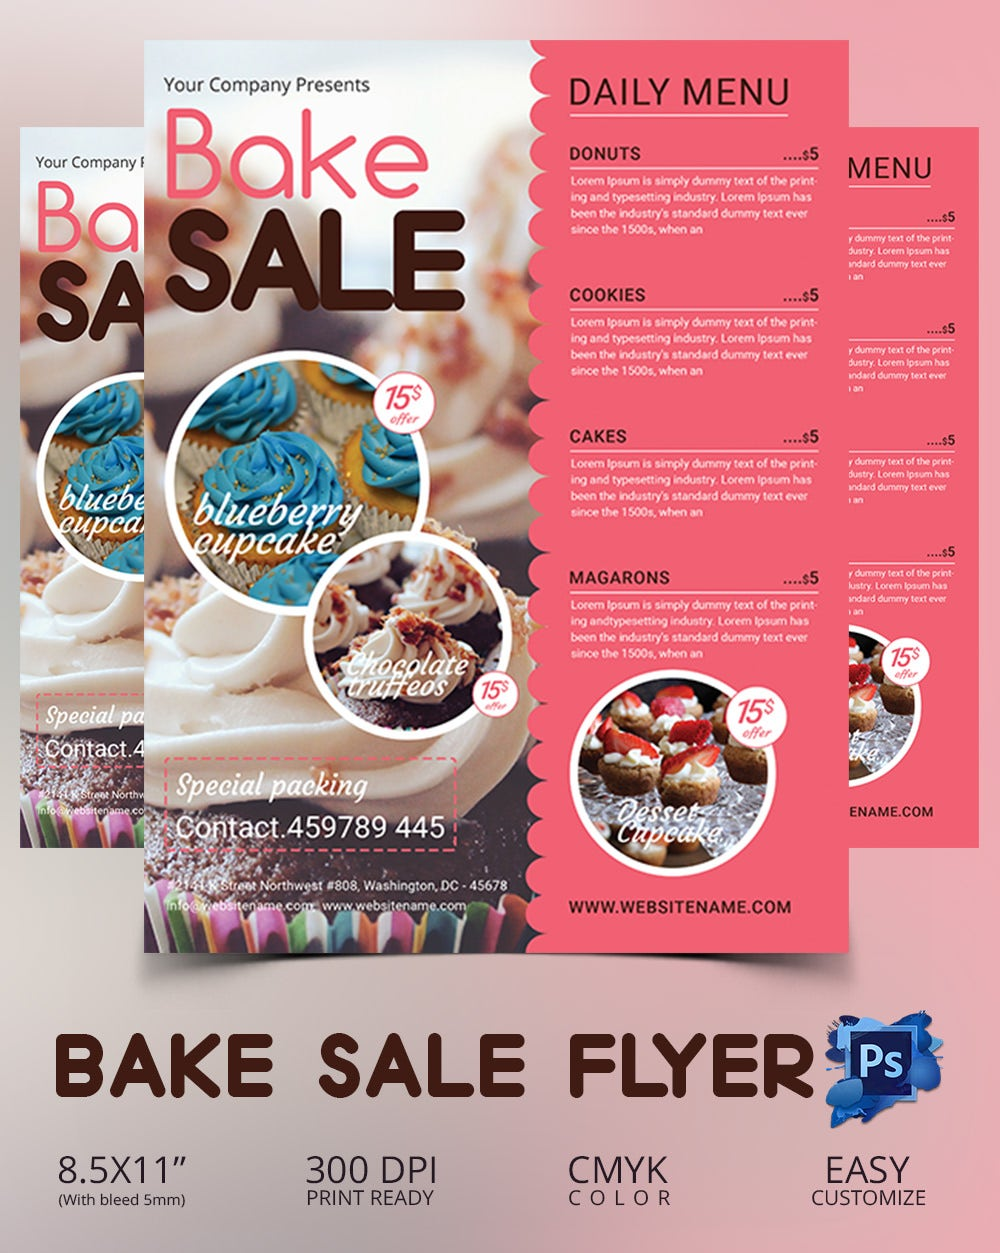 Flyer Samples Images – For Sale Flyer Template Free